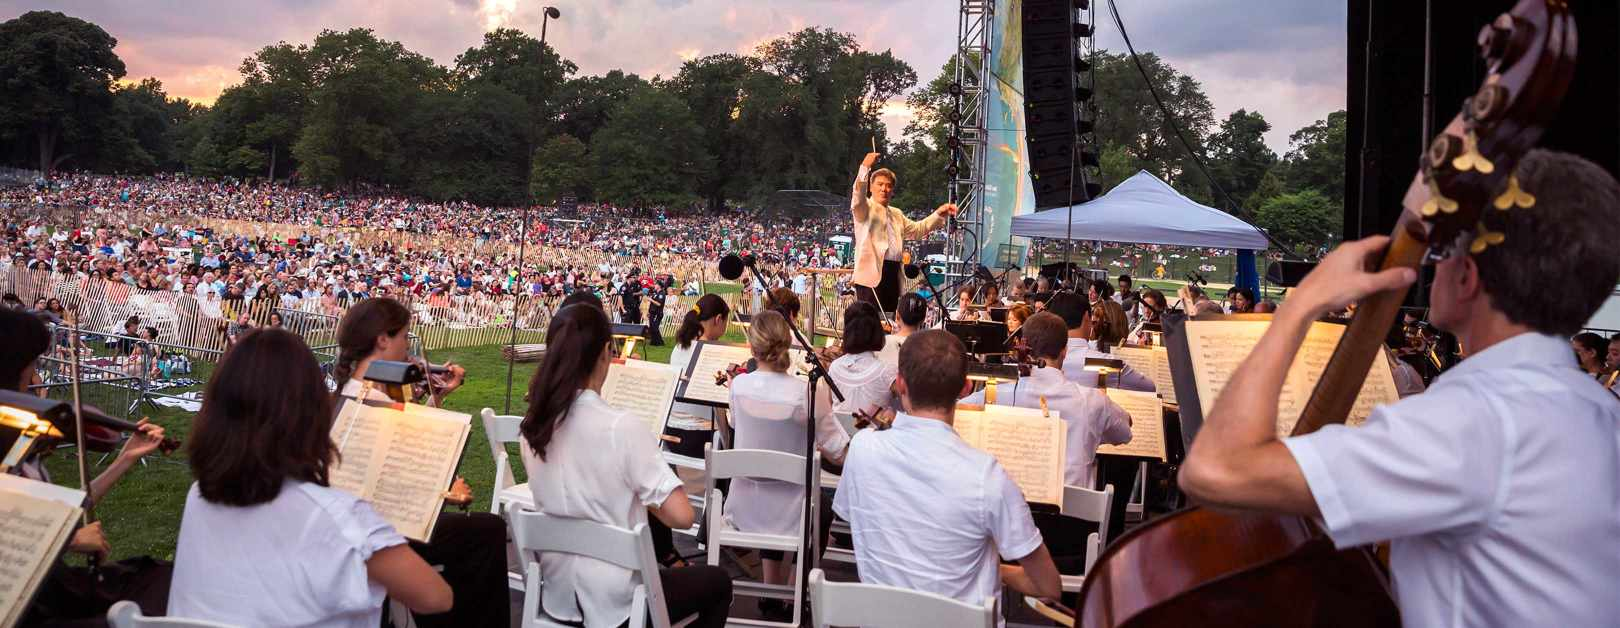 Orchestras in the parks 14